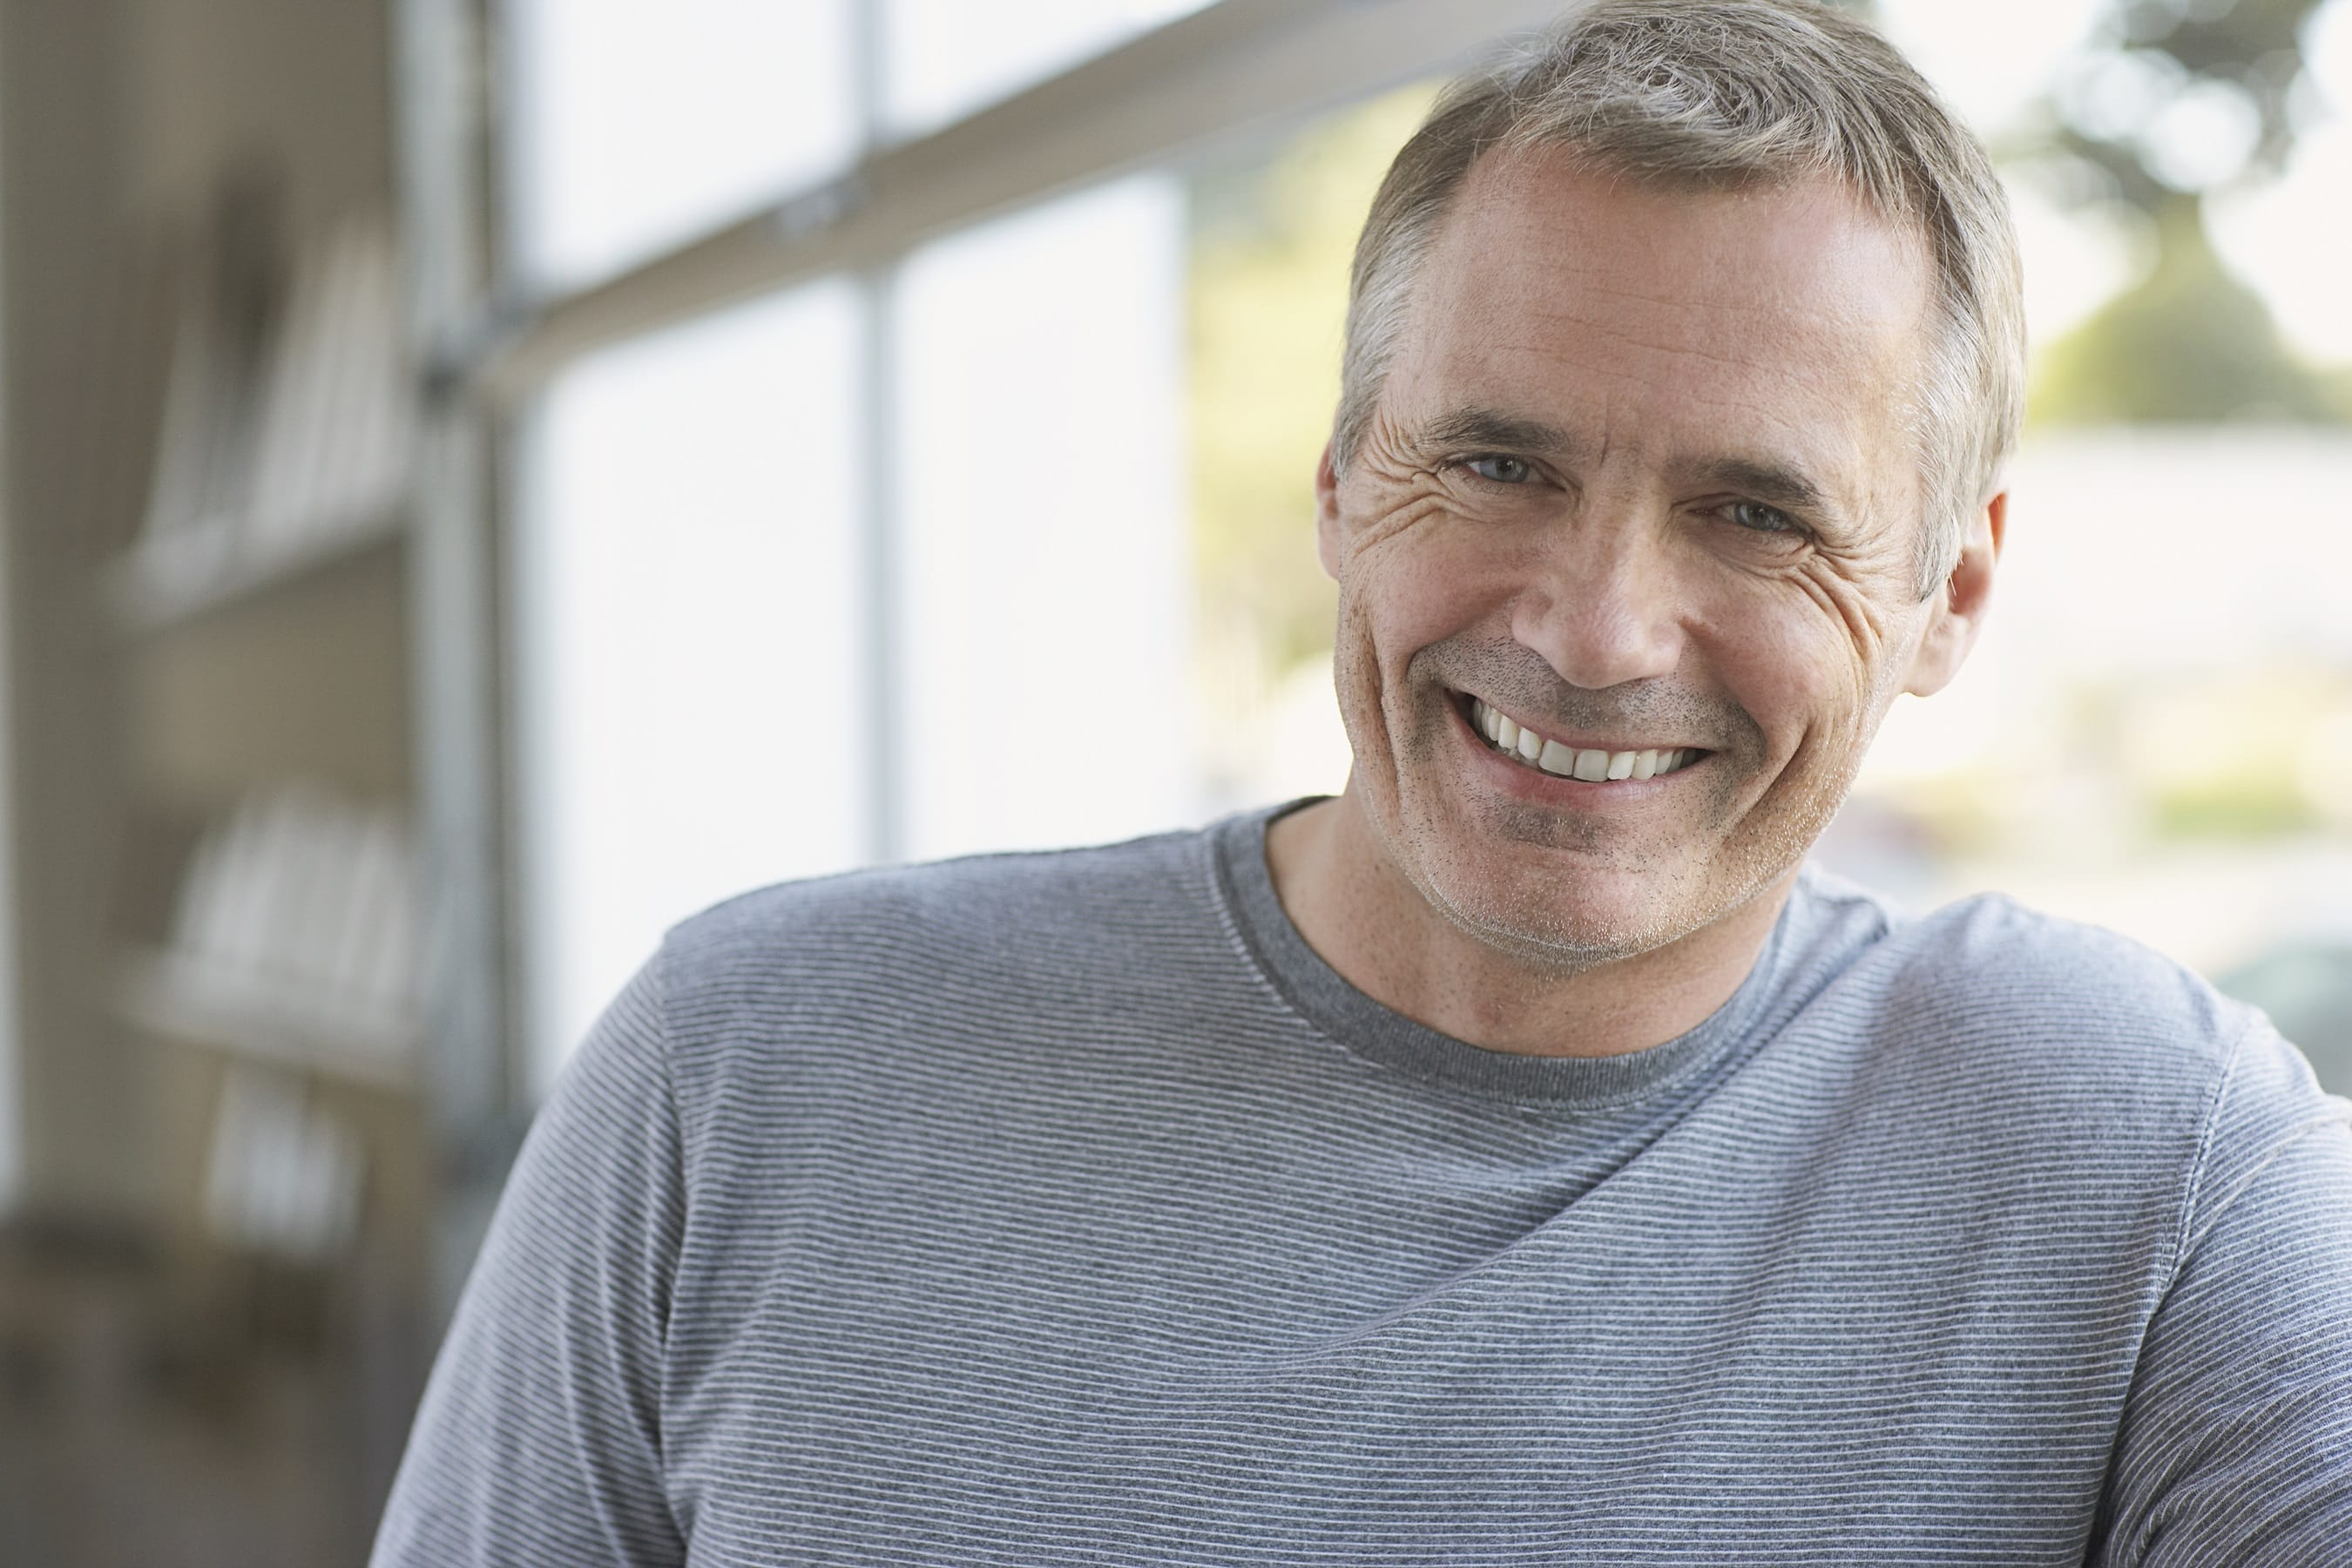 Men's Oral Health and Overall Health